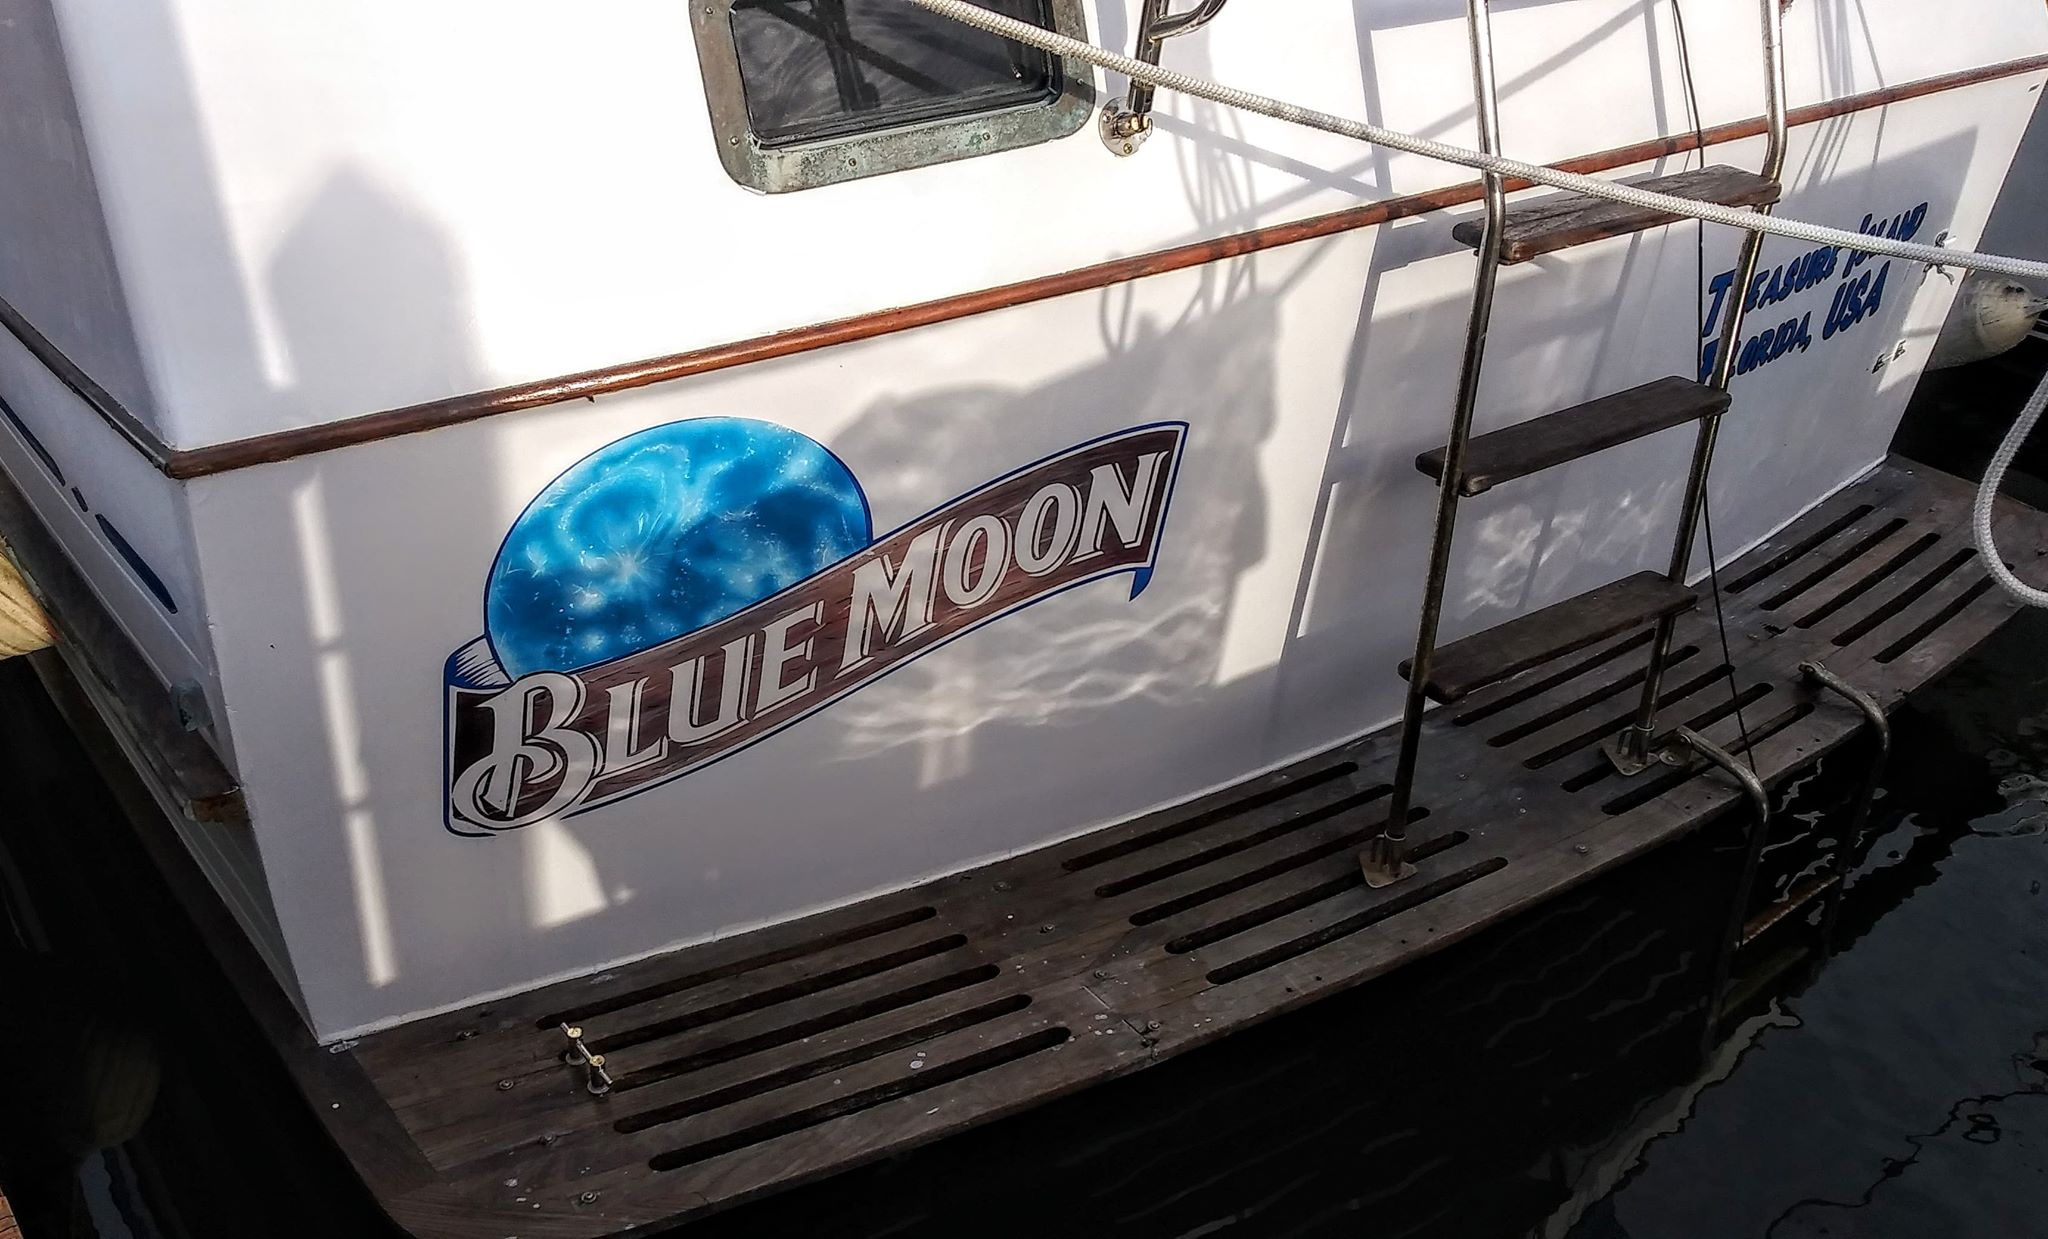 Blue Moon Boat Name